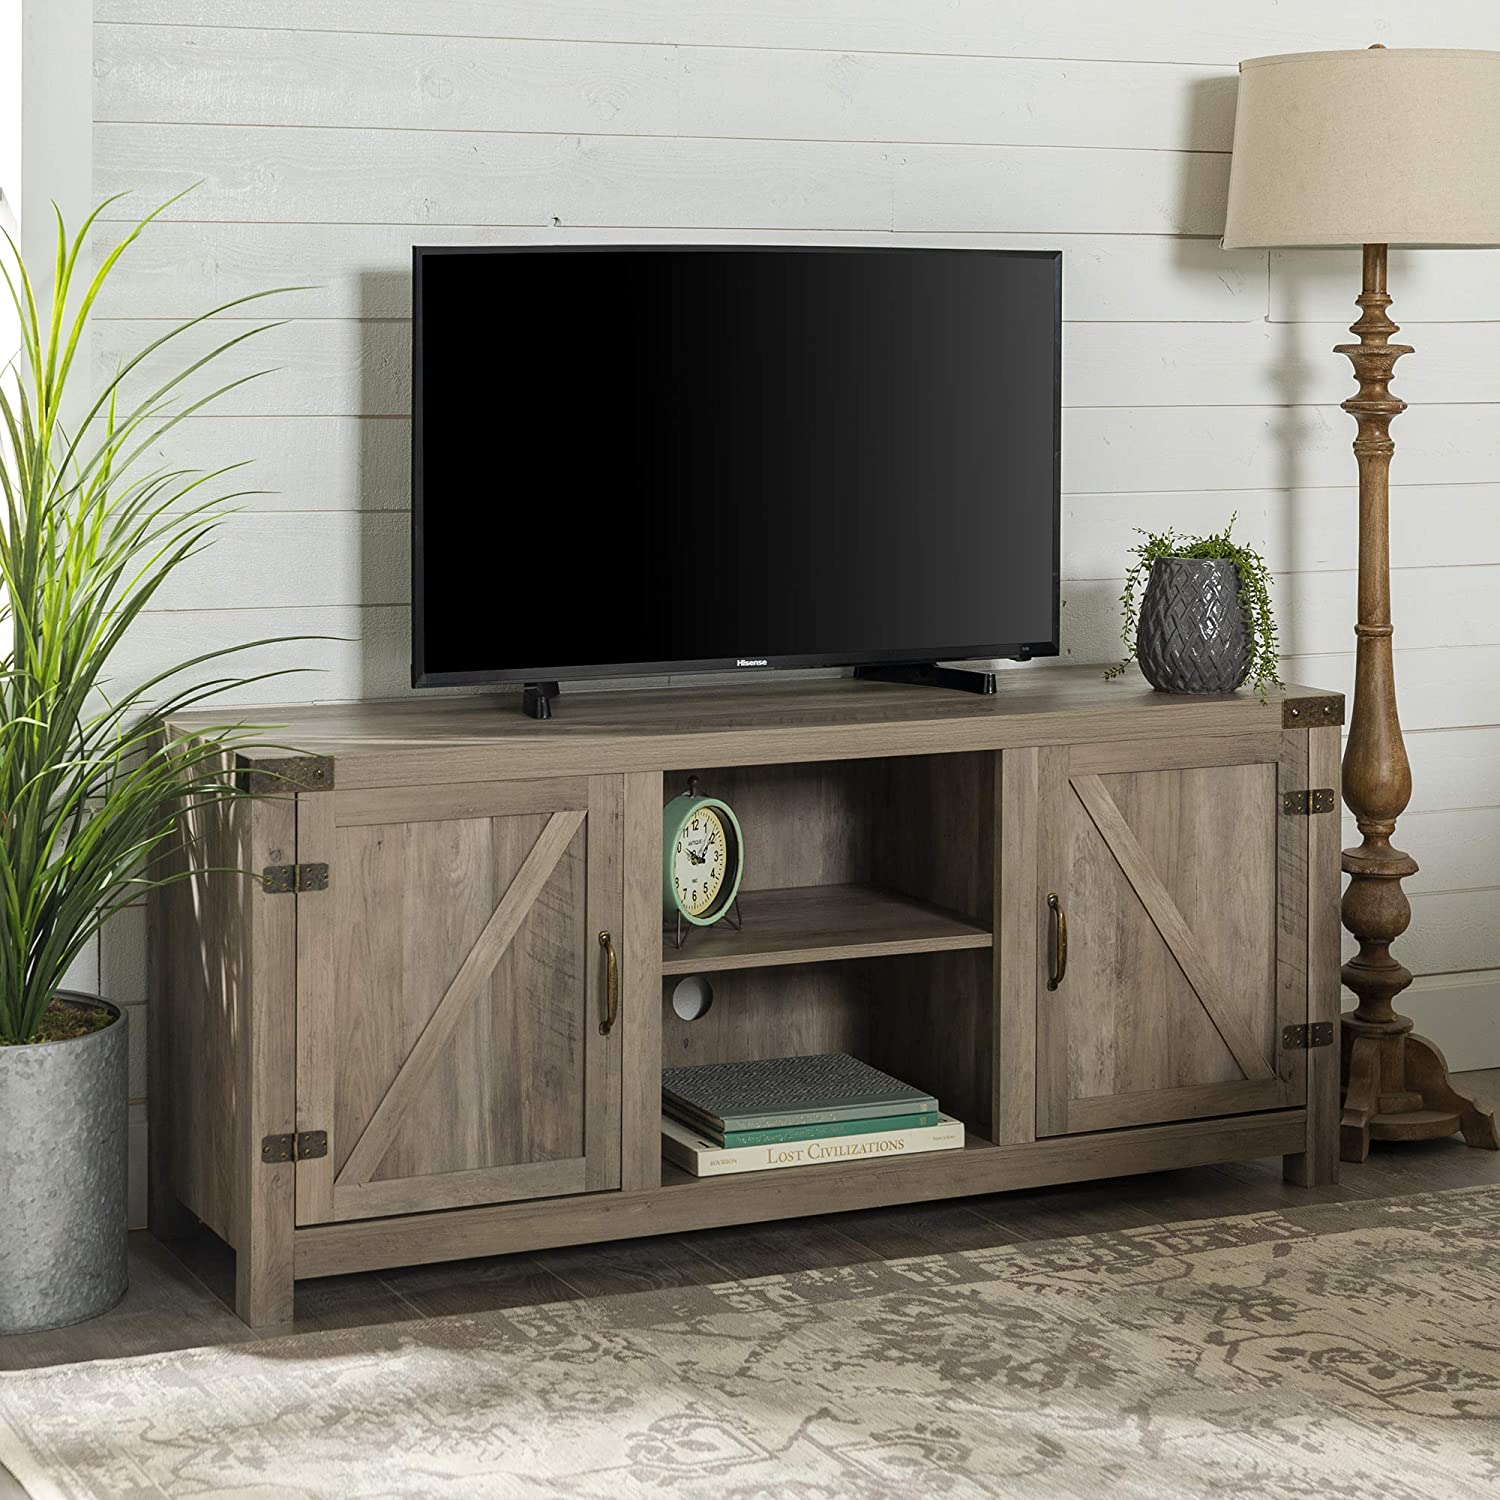 Home Accent Furnishings New TV Console 58 Inch with Sliding Barn Doors and White Oak Finish